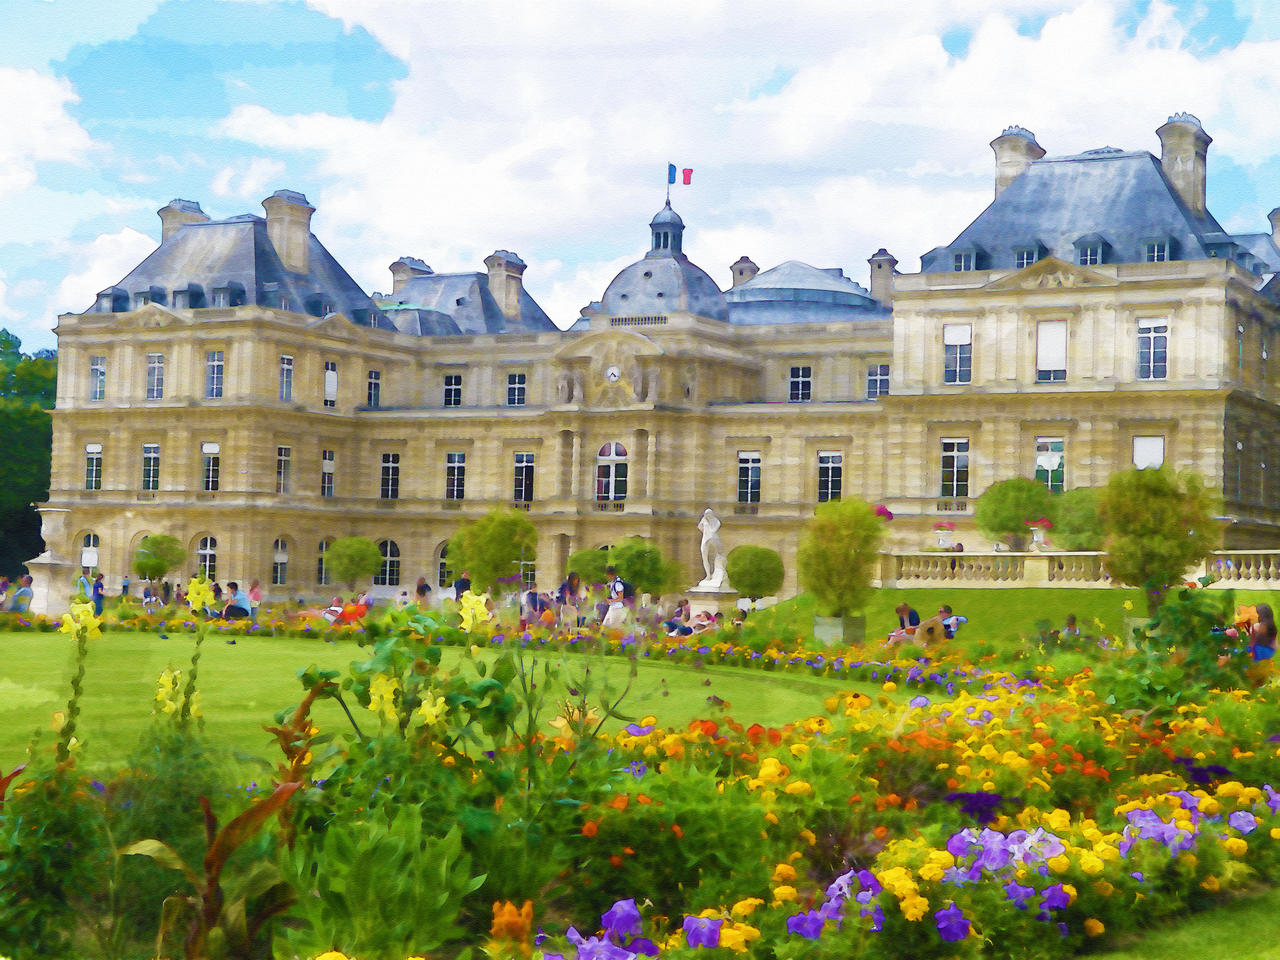 Jardin du luxembourg watercolor effect by artclem on for Jardin du luxembourg